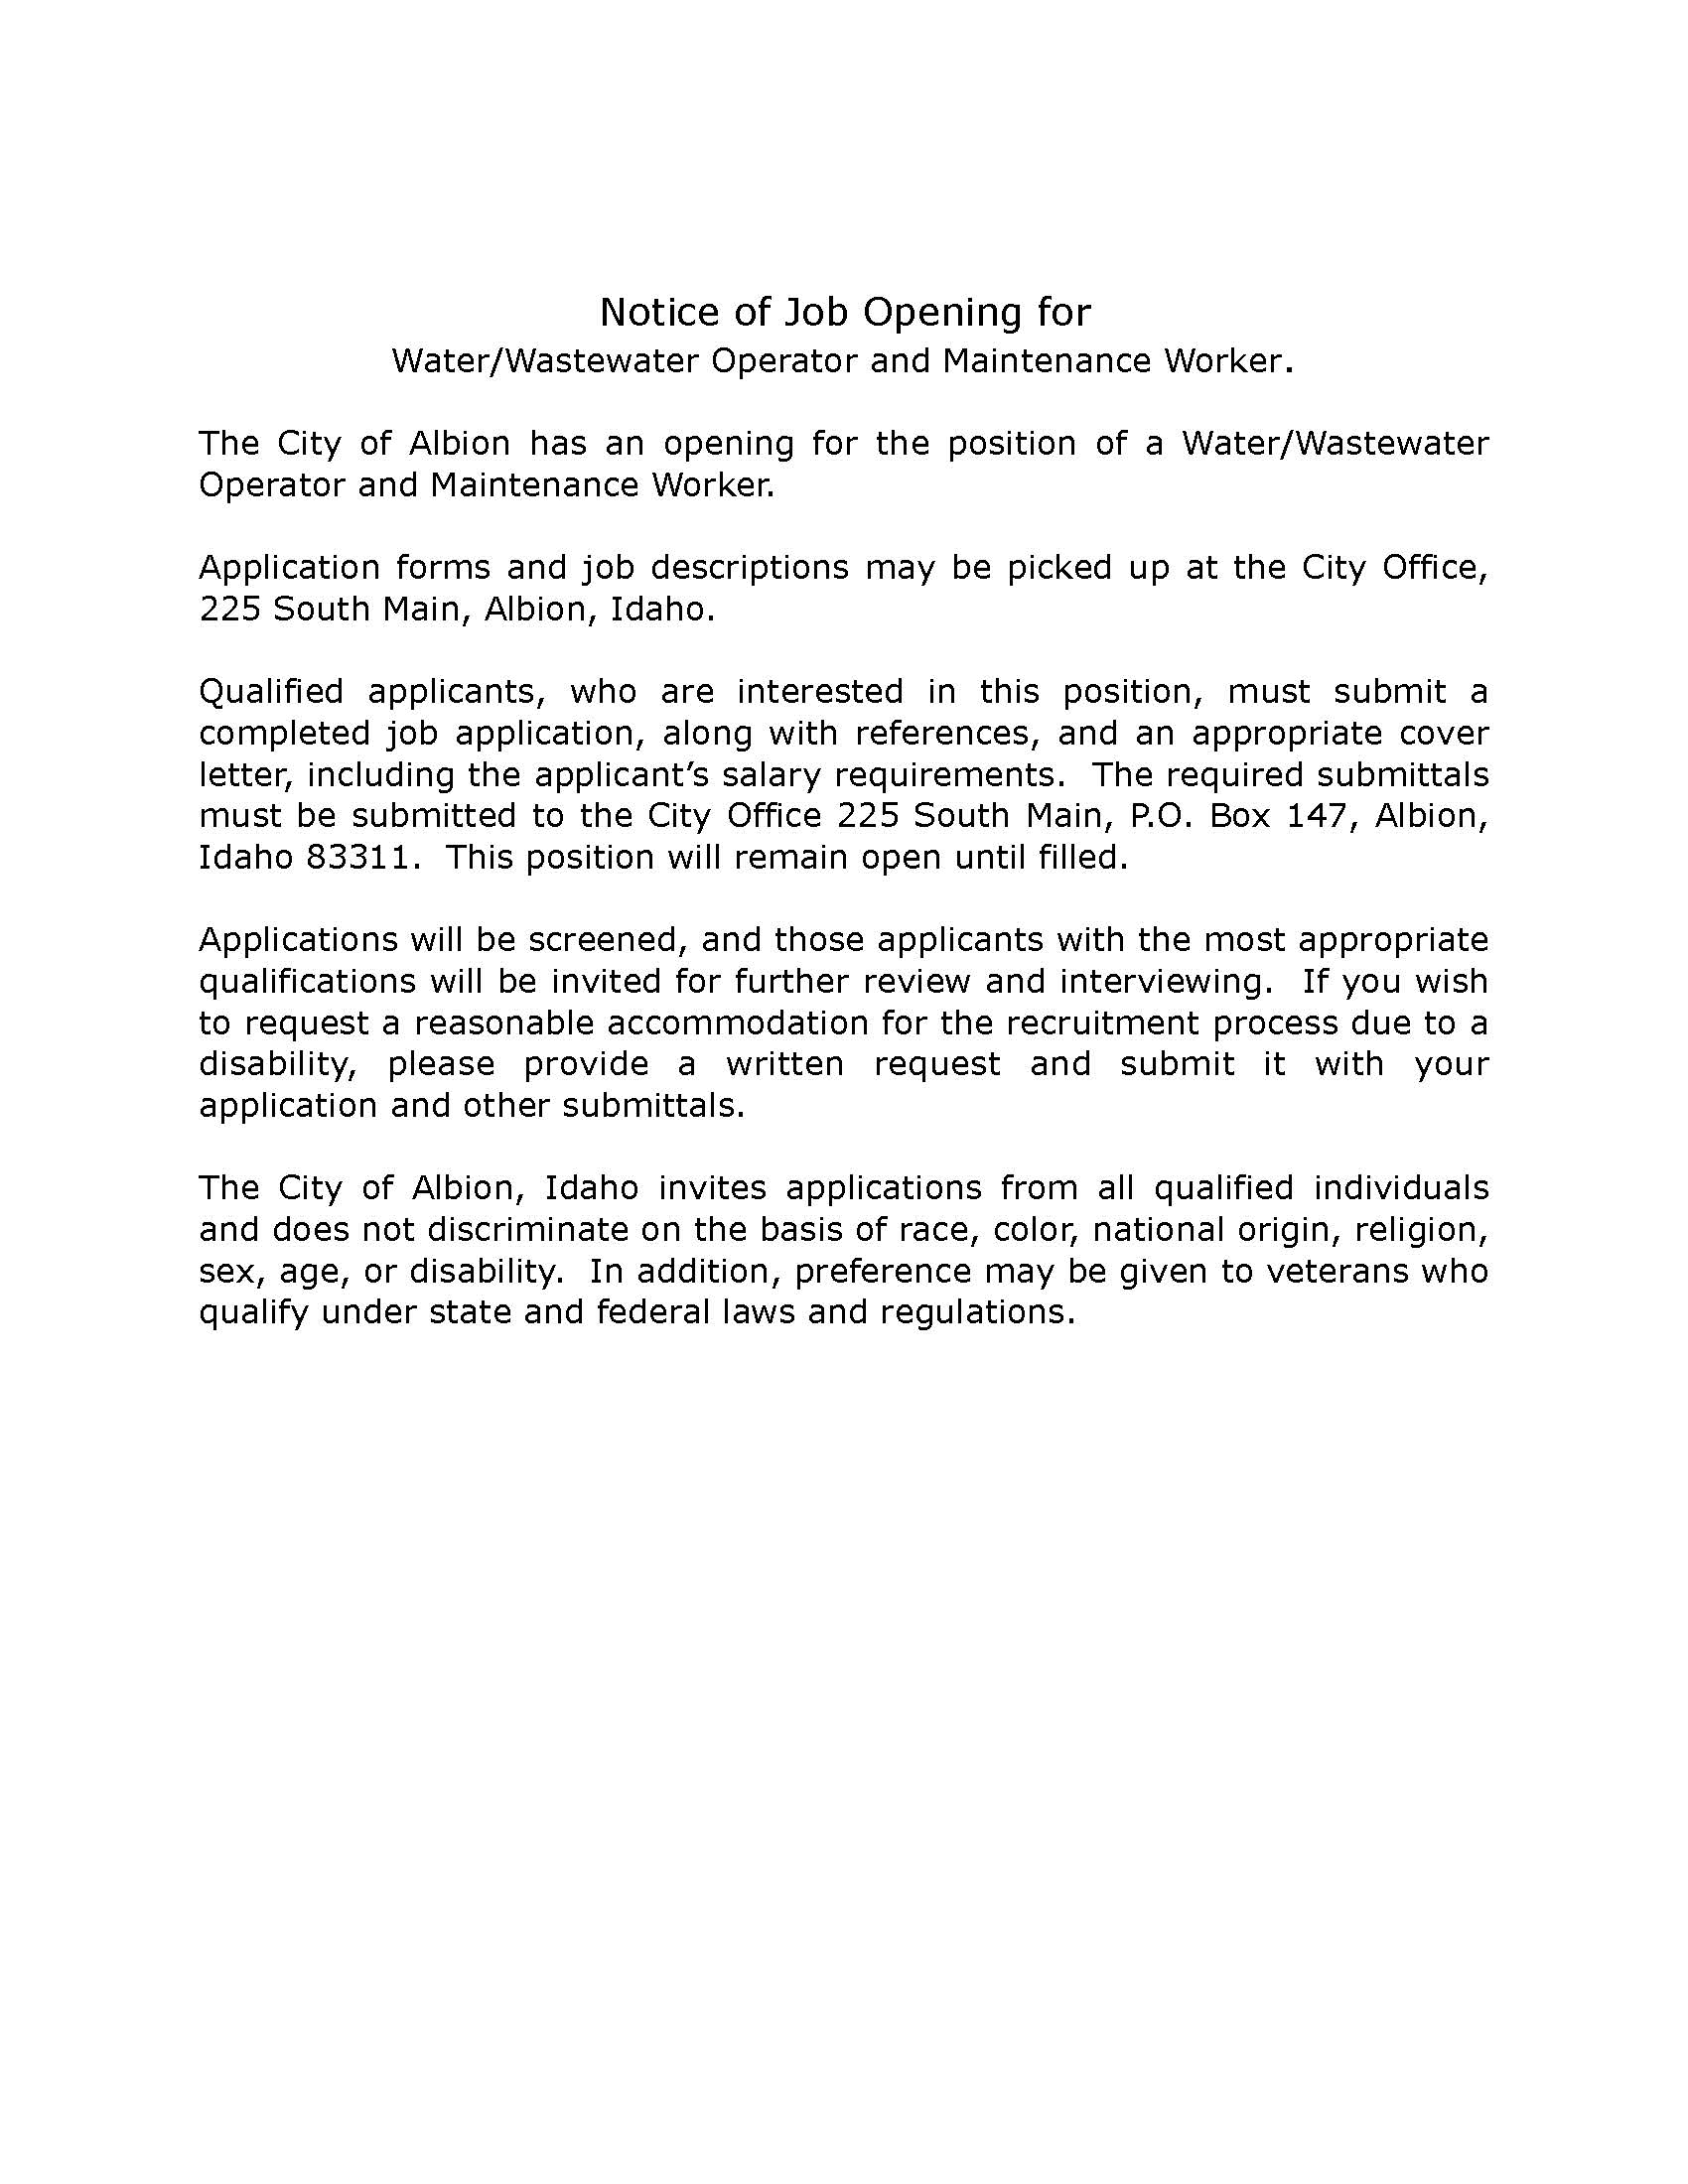 01232018 Notice of Job Opening for Waste Water Maintenance Supervisor.jpg